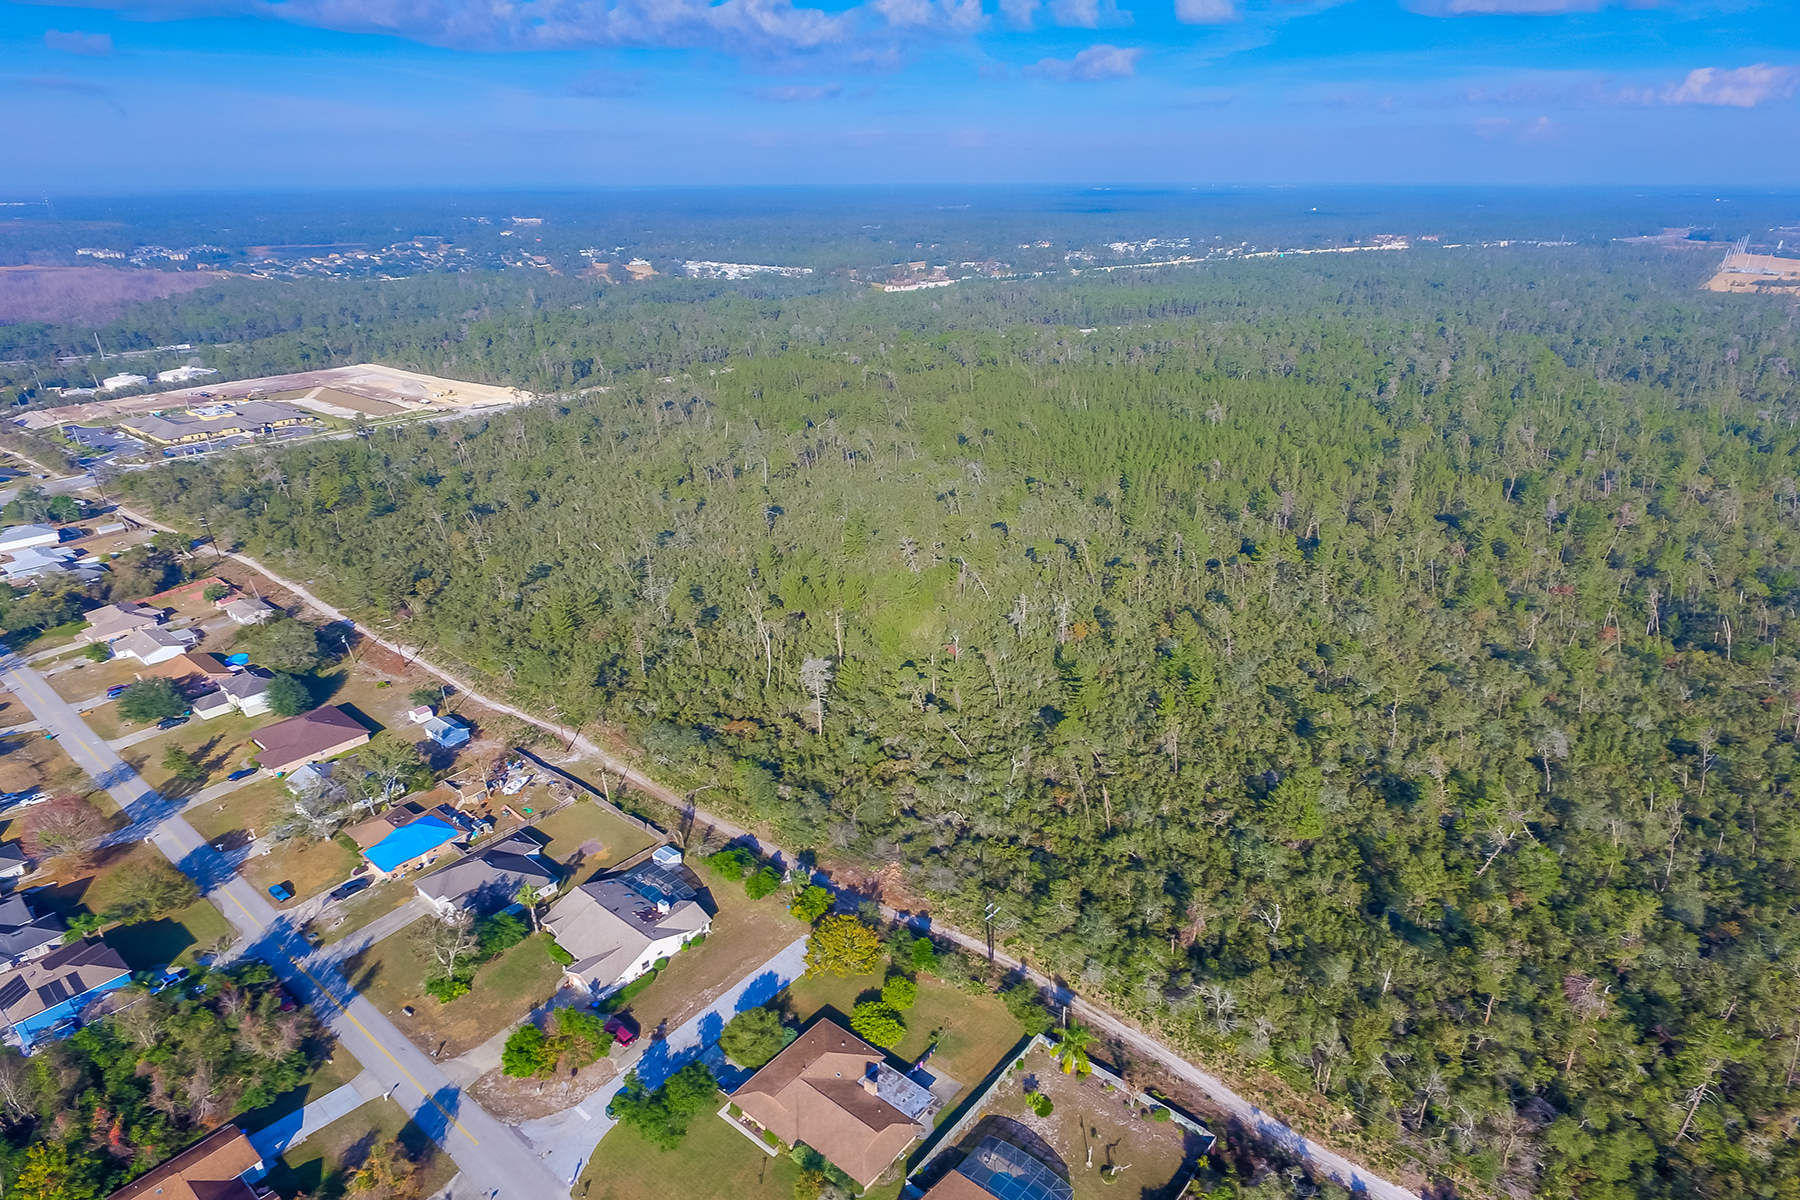 Land for Sale at NORTH ORLANDO- DELTONA N Normandy Blvd x Deltona, Florida 32725 United States